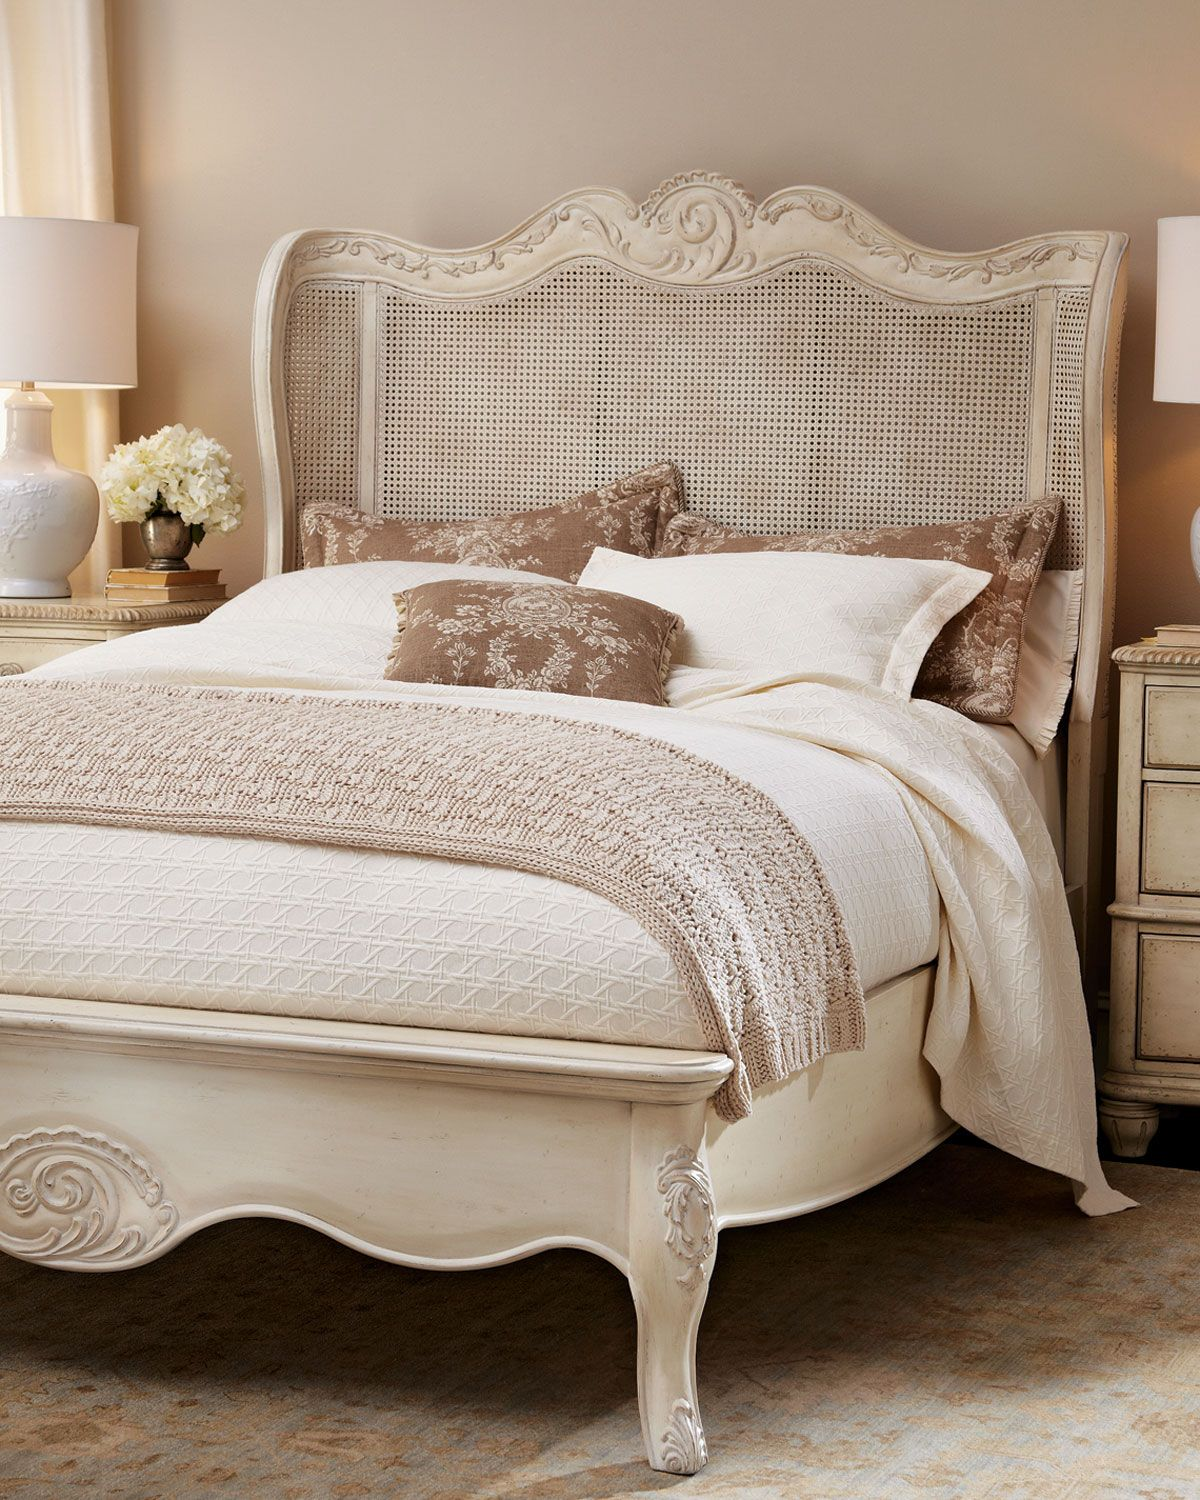 Cora Bedroom Furniture Shabby Chic Inspirations Shabbychic